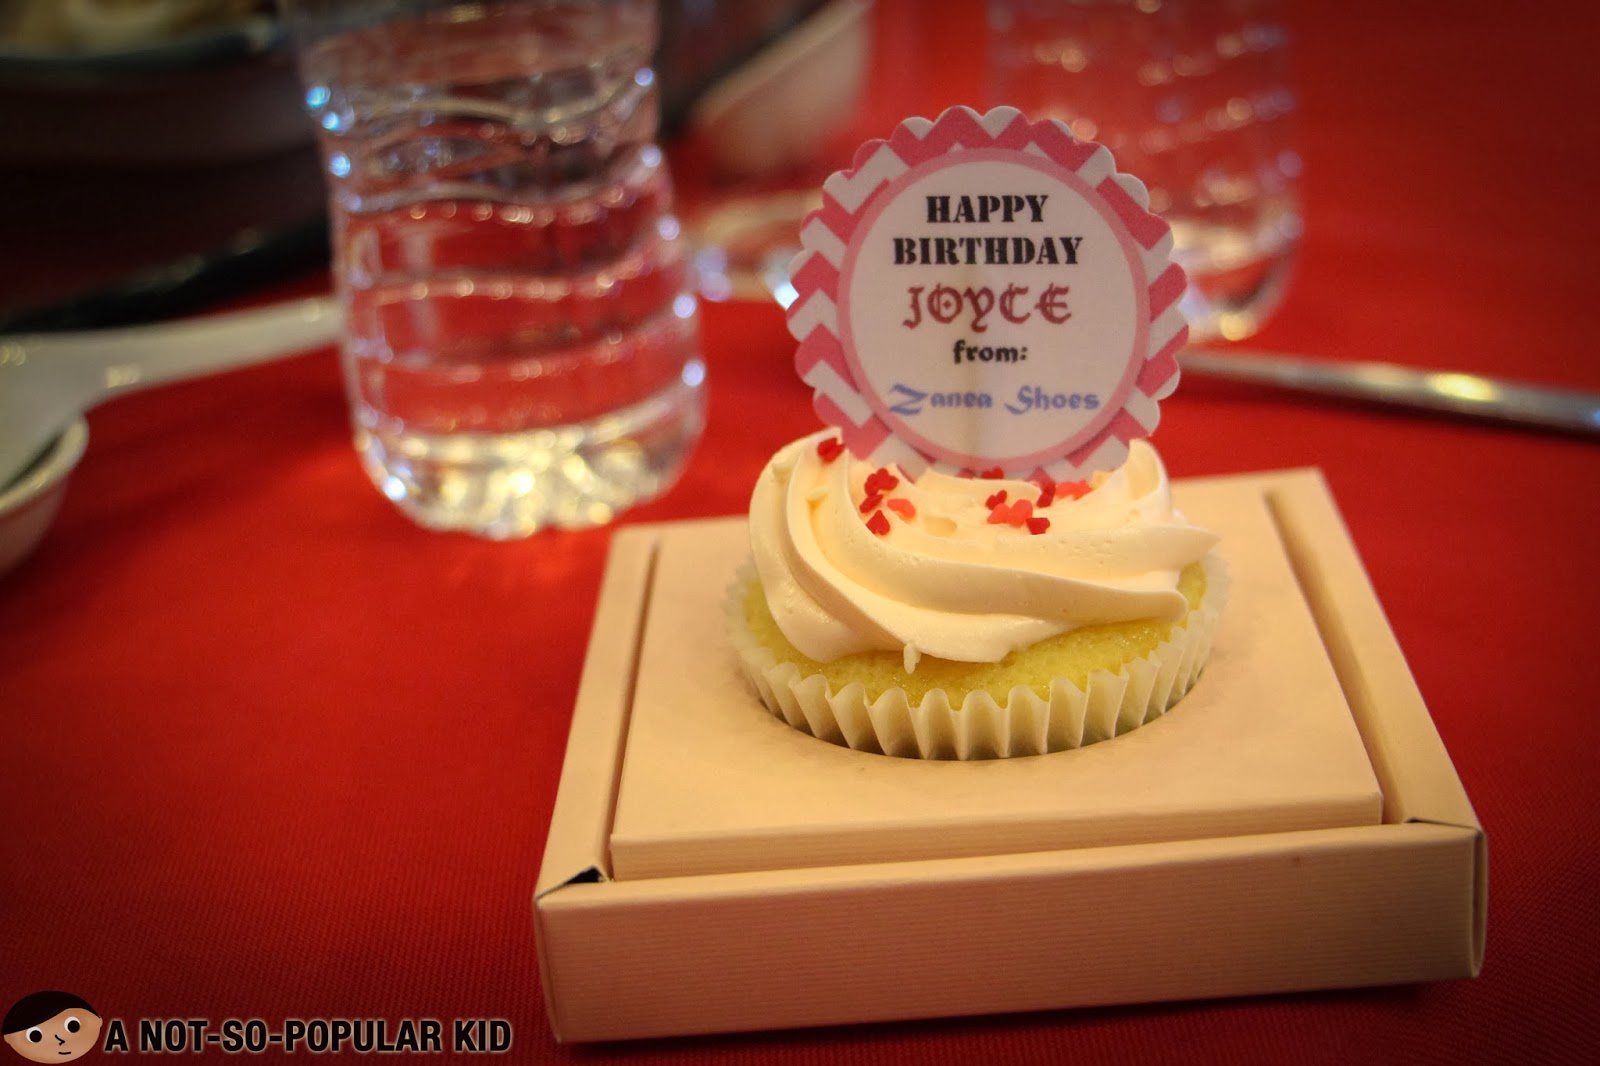 A Cupcake for the Birthday Girl , Joyce Ching! Happy 19th Birthday!